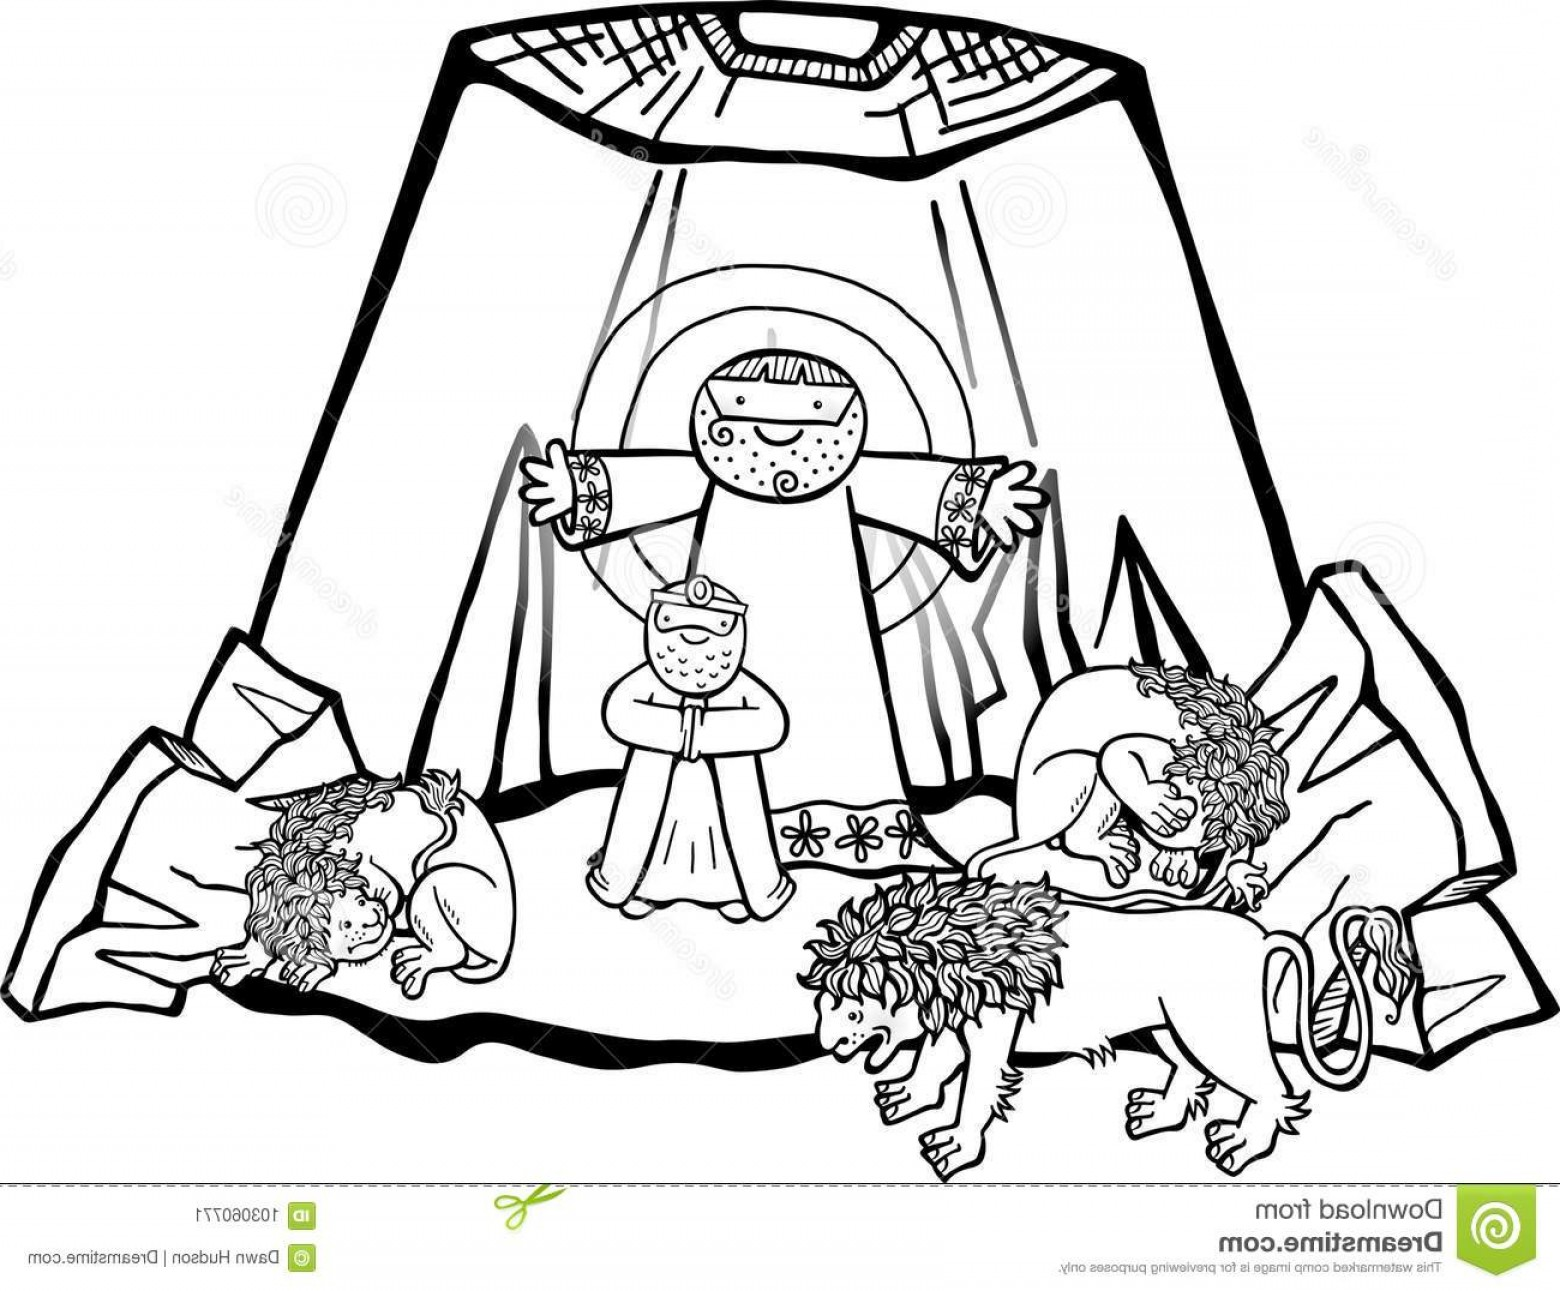 Faith Lions Vector Art Images: Daniel Lions Den Cartoon Illustration Being Delivered Angel Mouths Beasts Black White Version Image